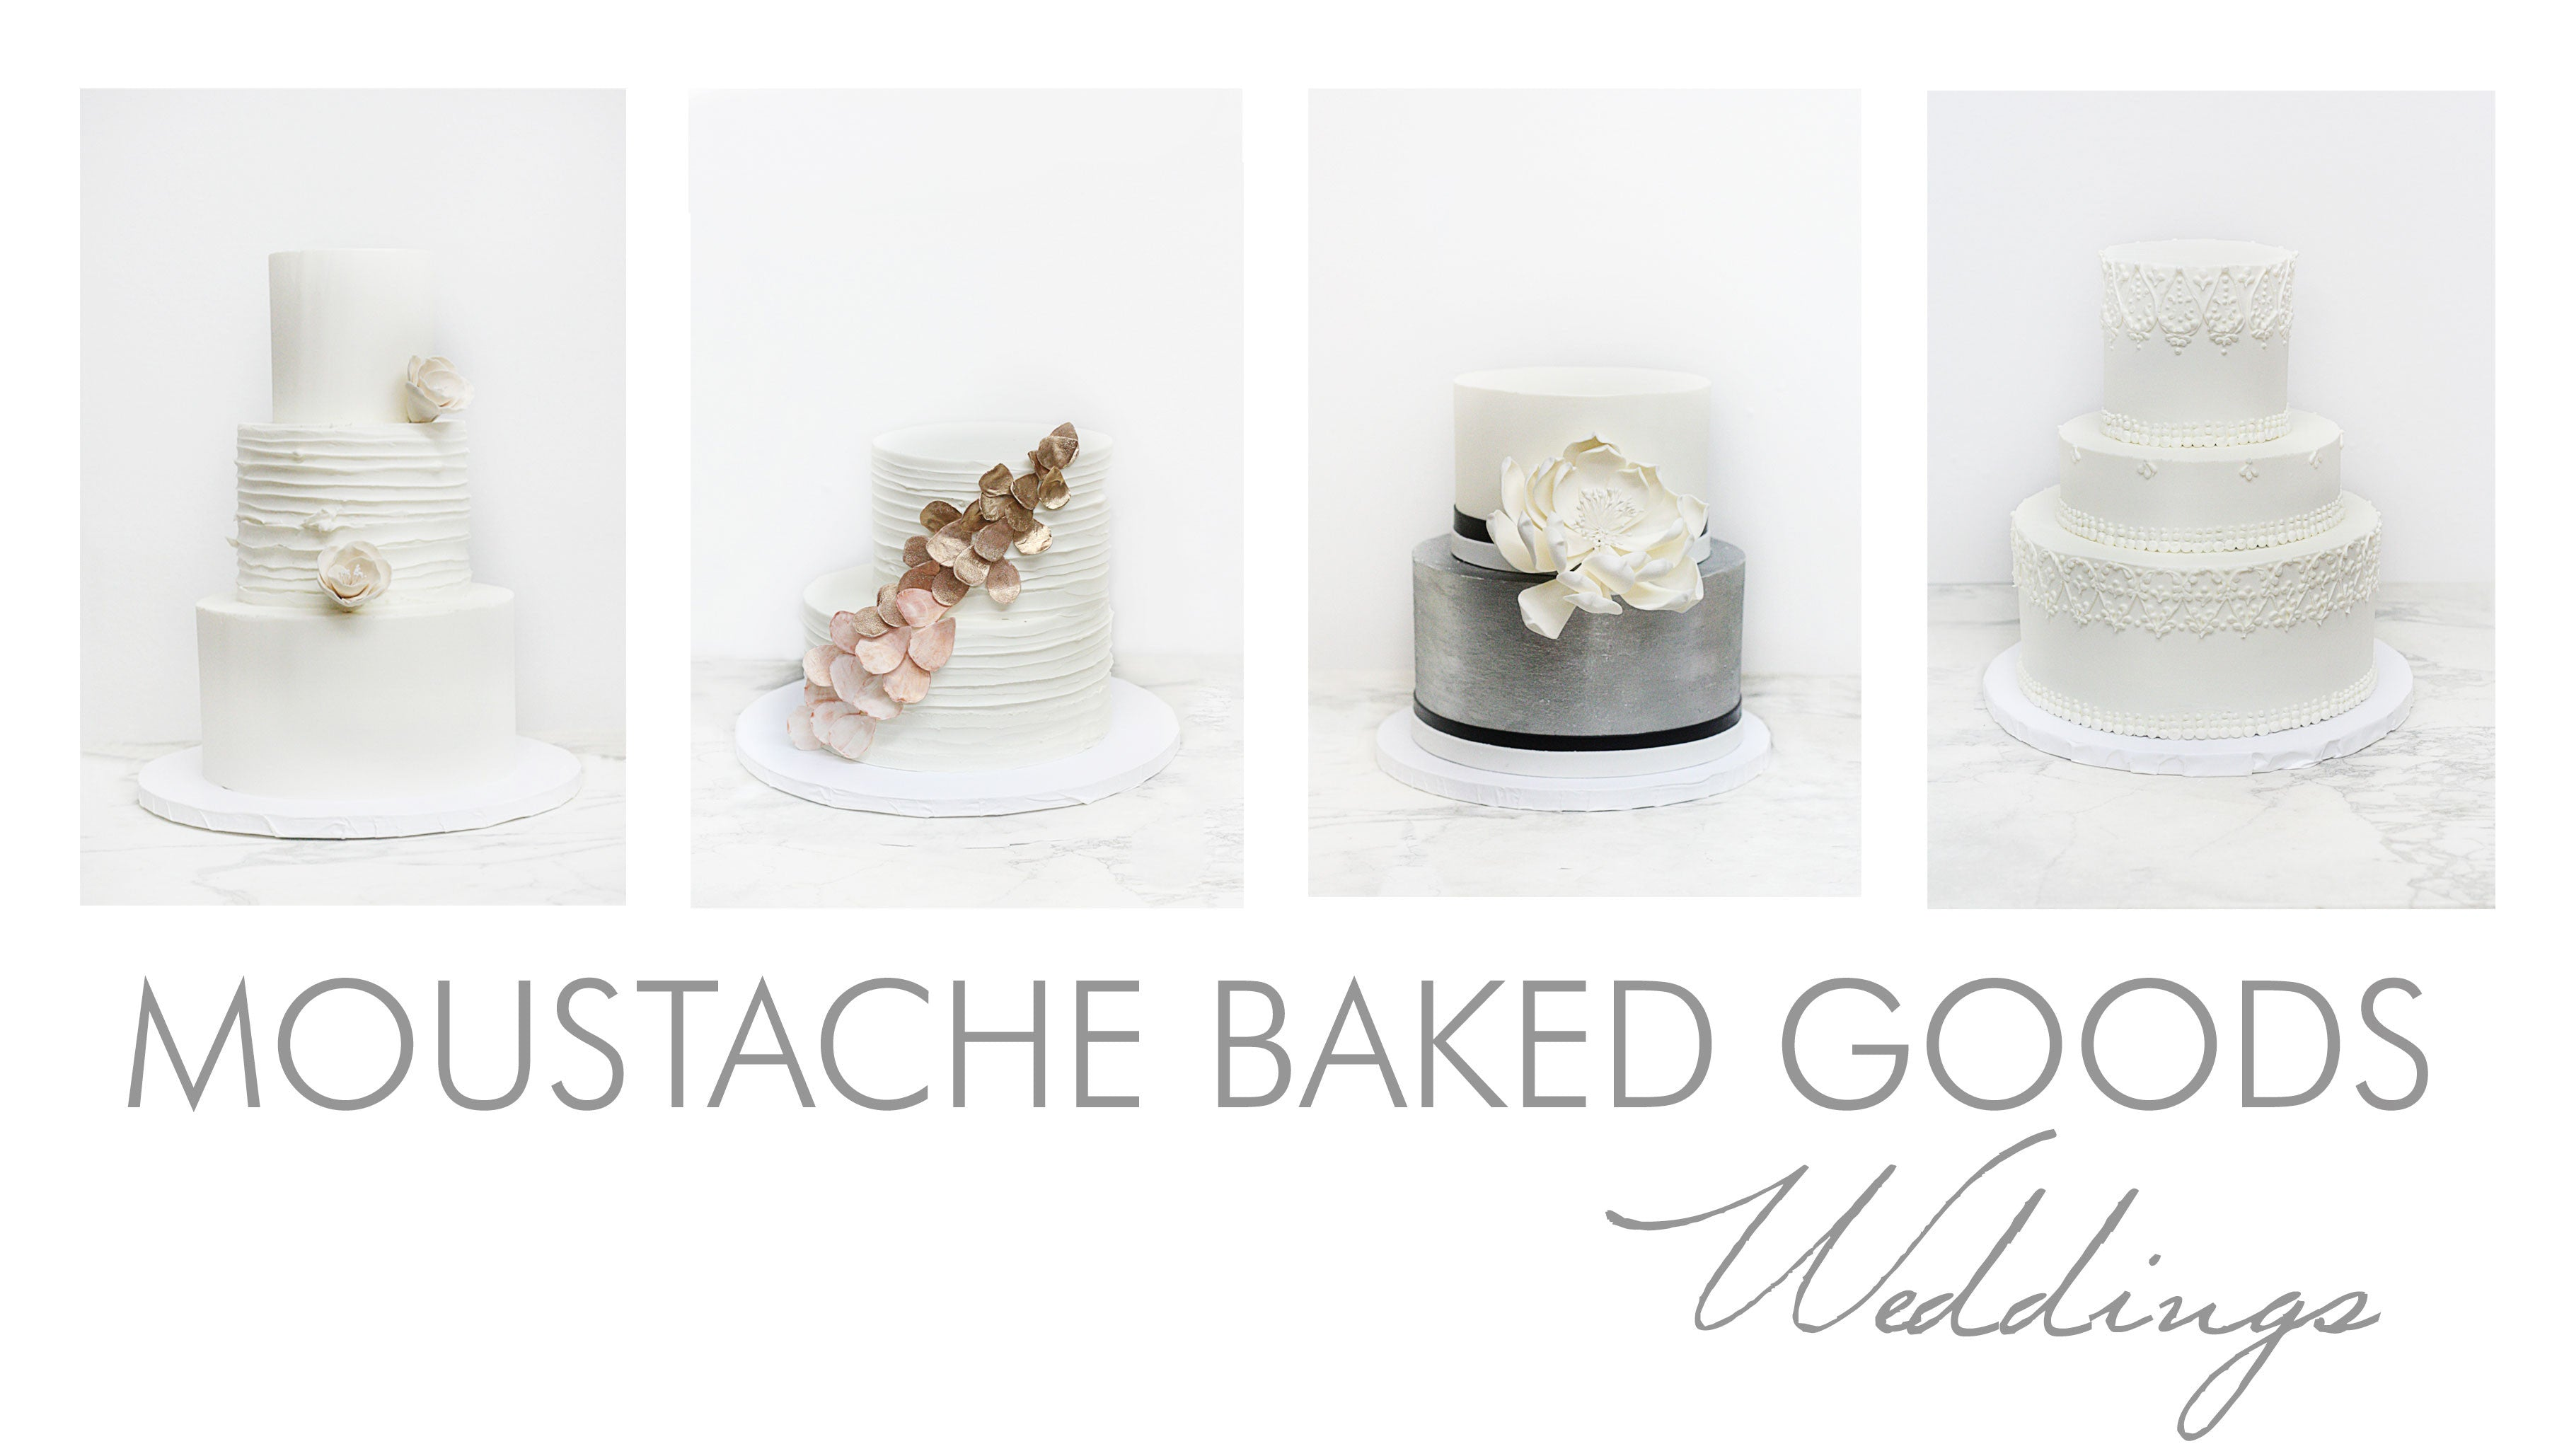 Weddings and Events / Moustache Baked Goods